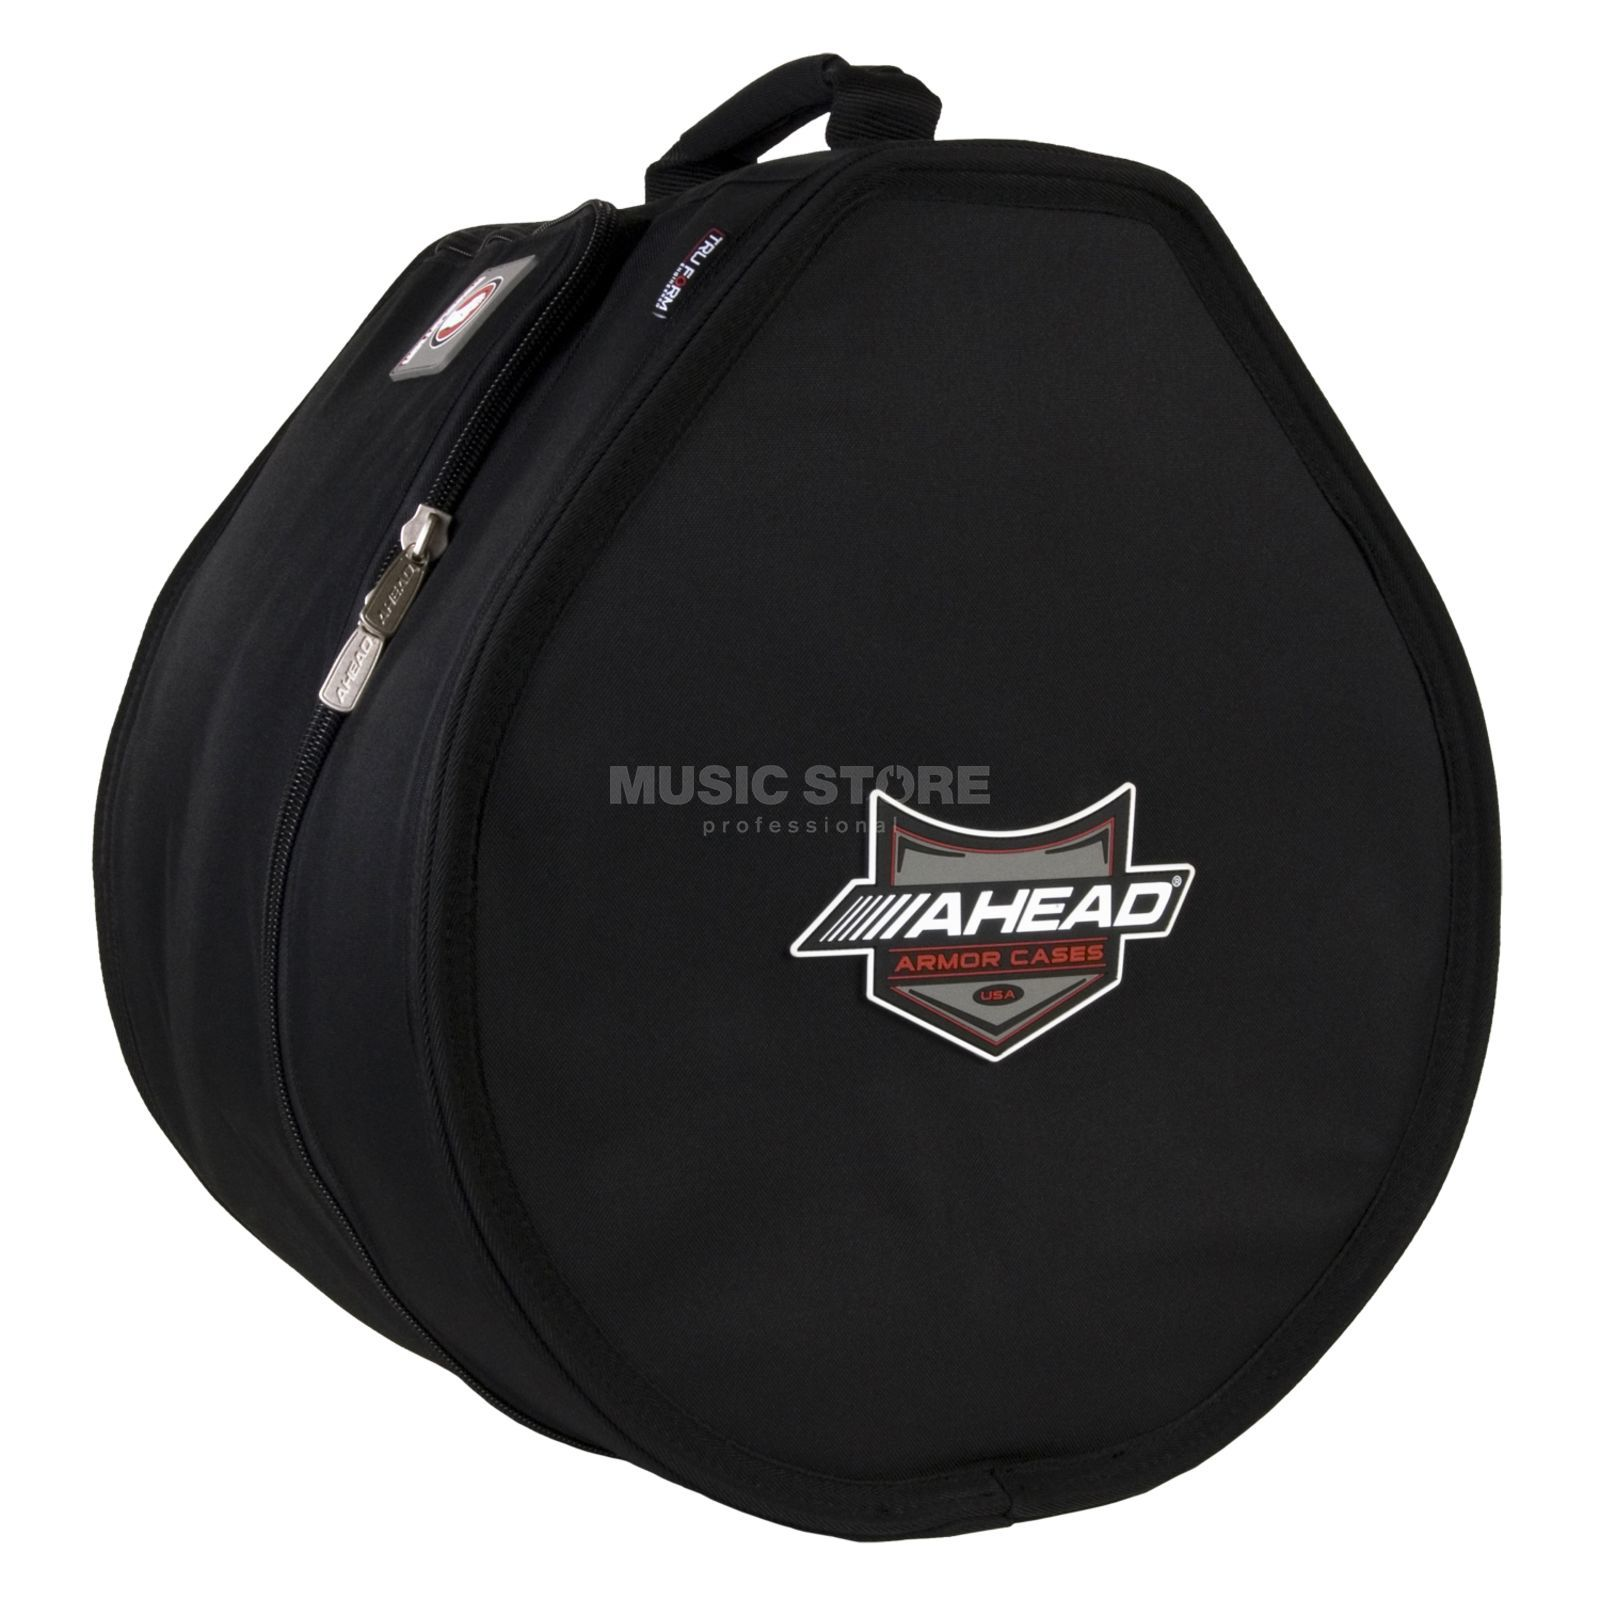 "Ahead Armor Cases Tom Bag 12""x10""  Produktbild"